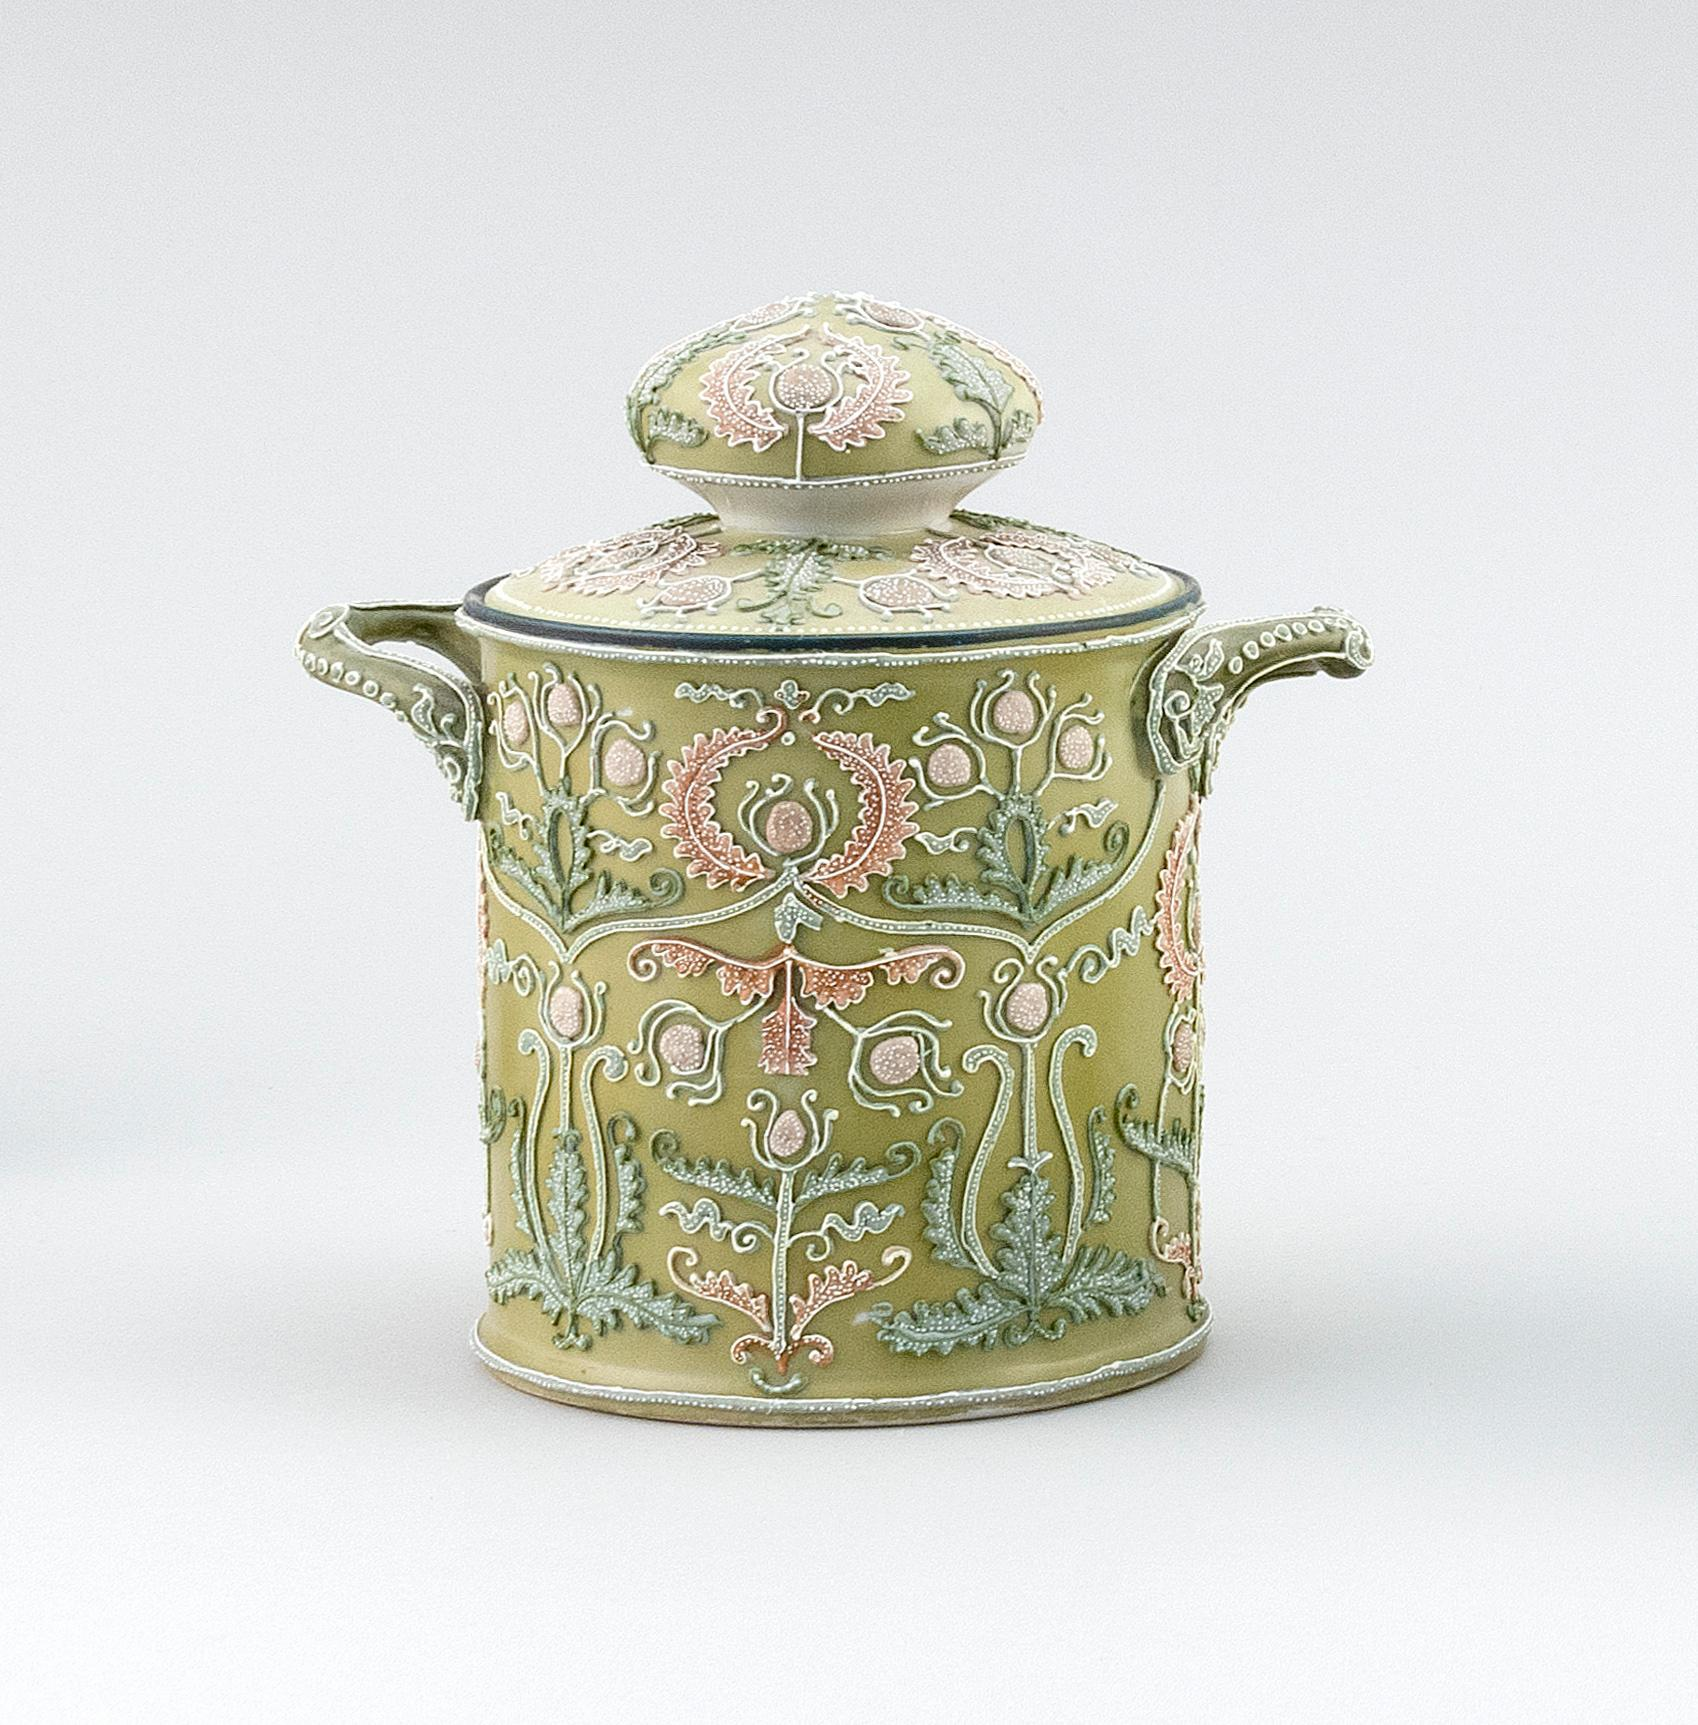 "MORIAGE NIPPON PORCELAIN HUMIDOR Cylindrical, with applied handles and passionflower decoration. Height 6.5""."